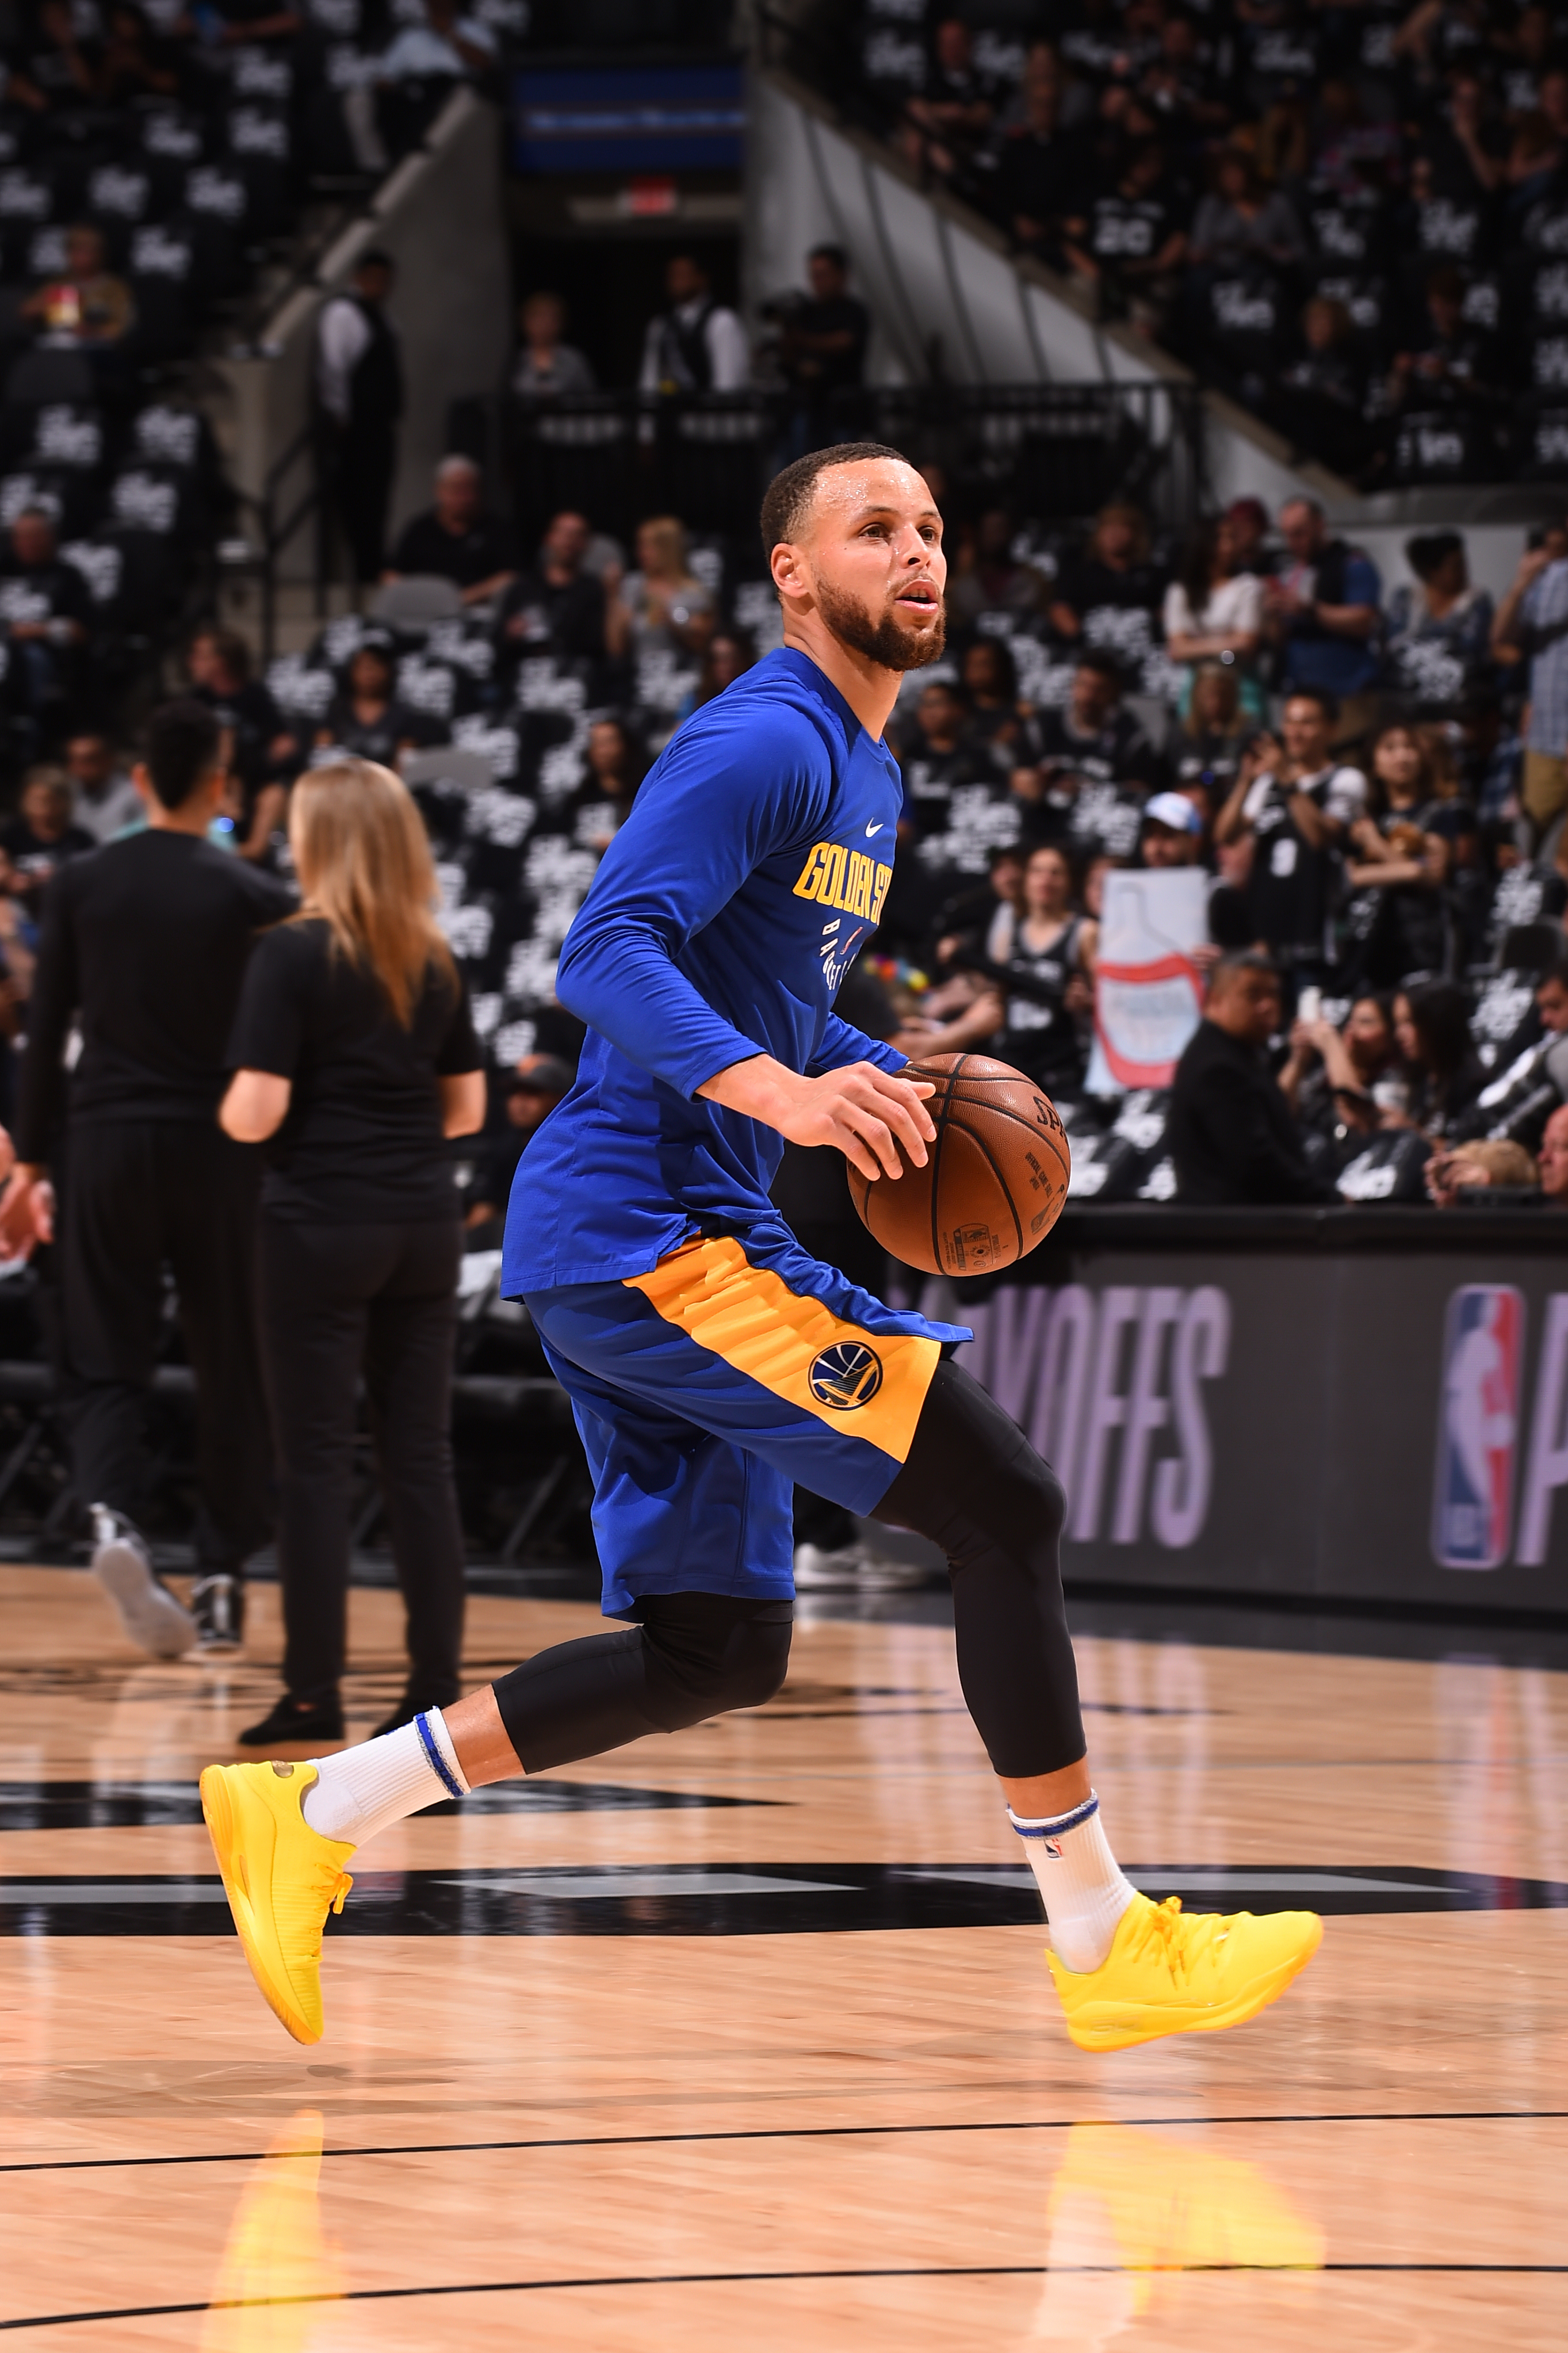 452b0acb8f62 Coach Steve Kerr says Stephen Curry will not play  anytime soon ...